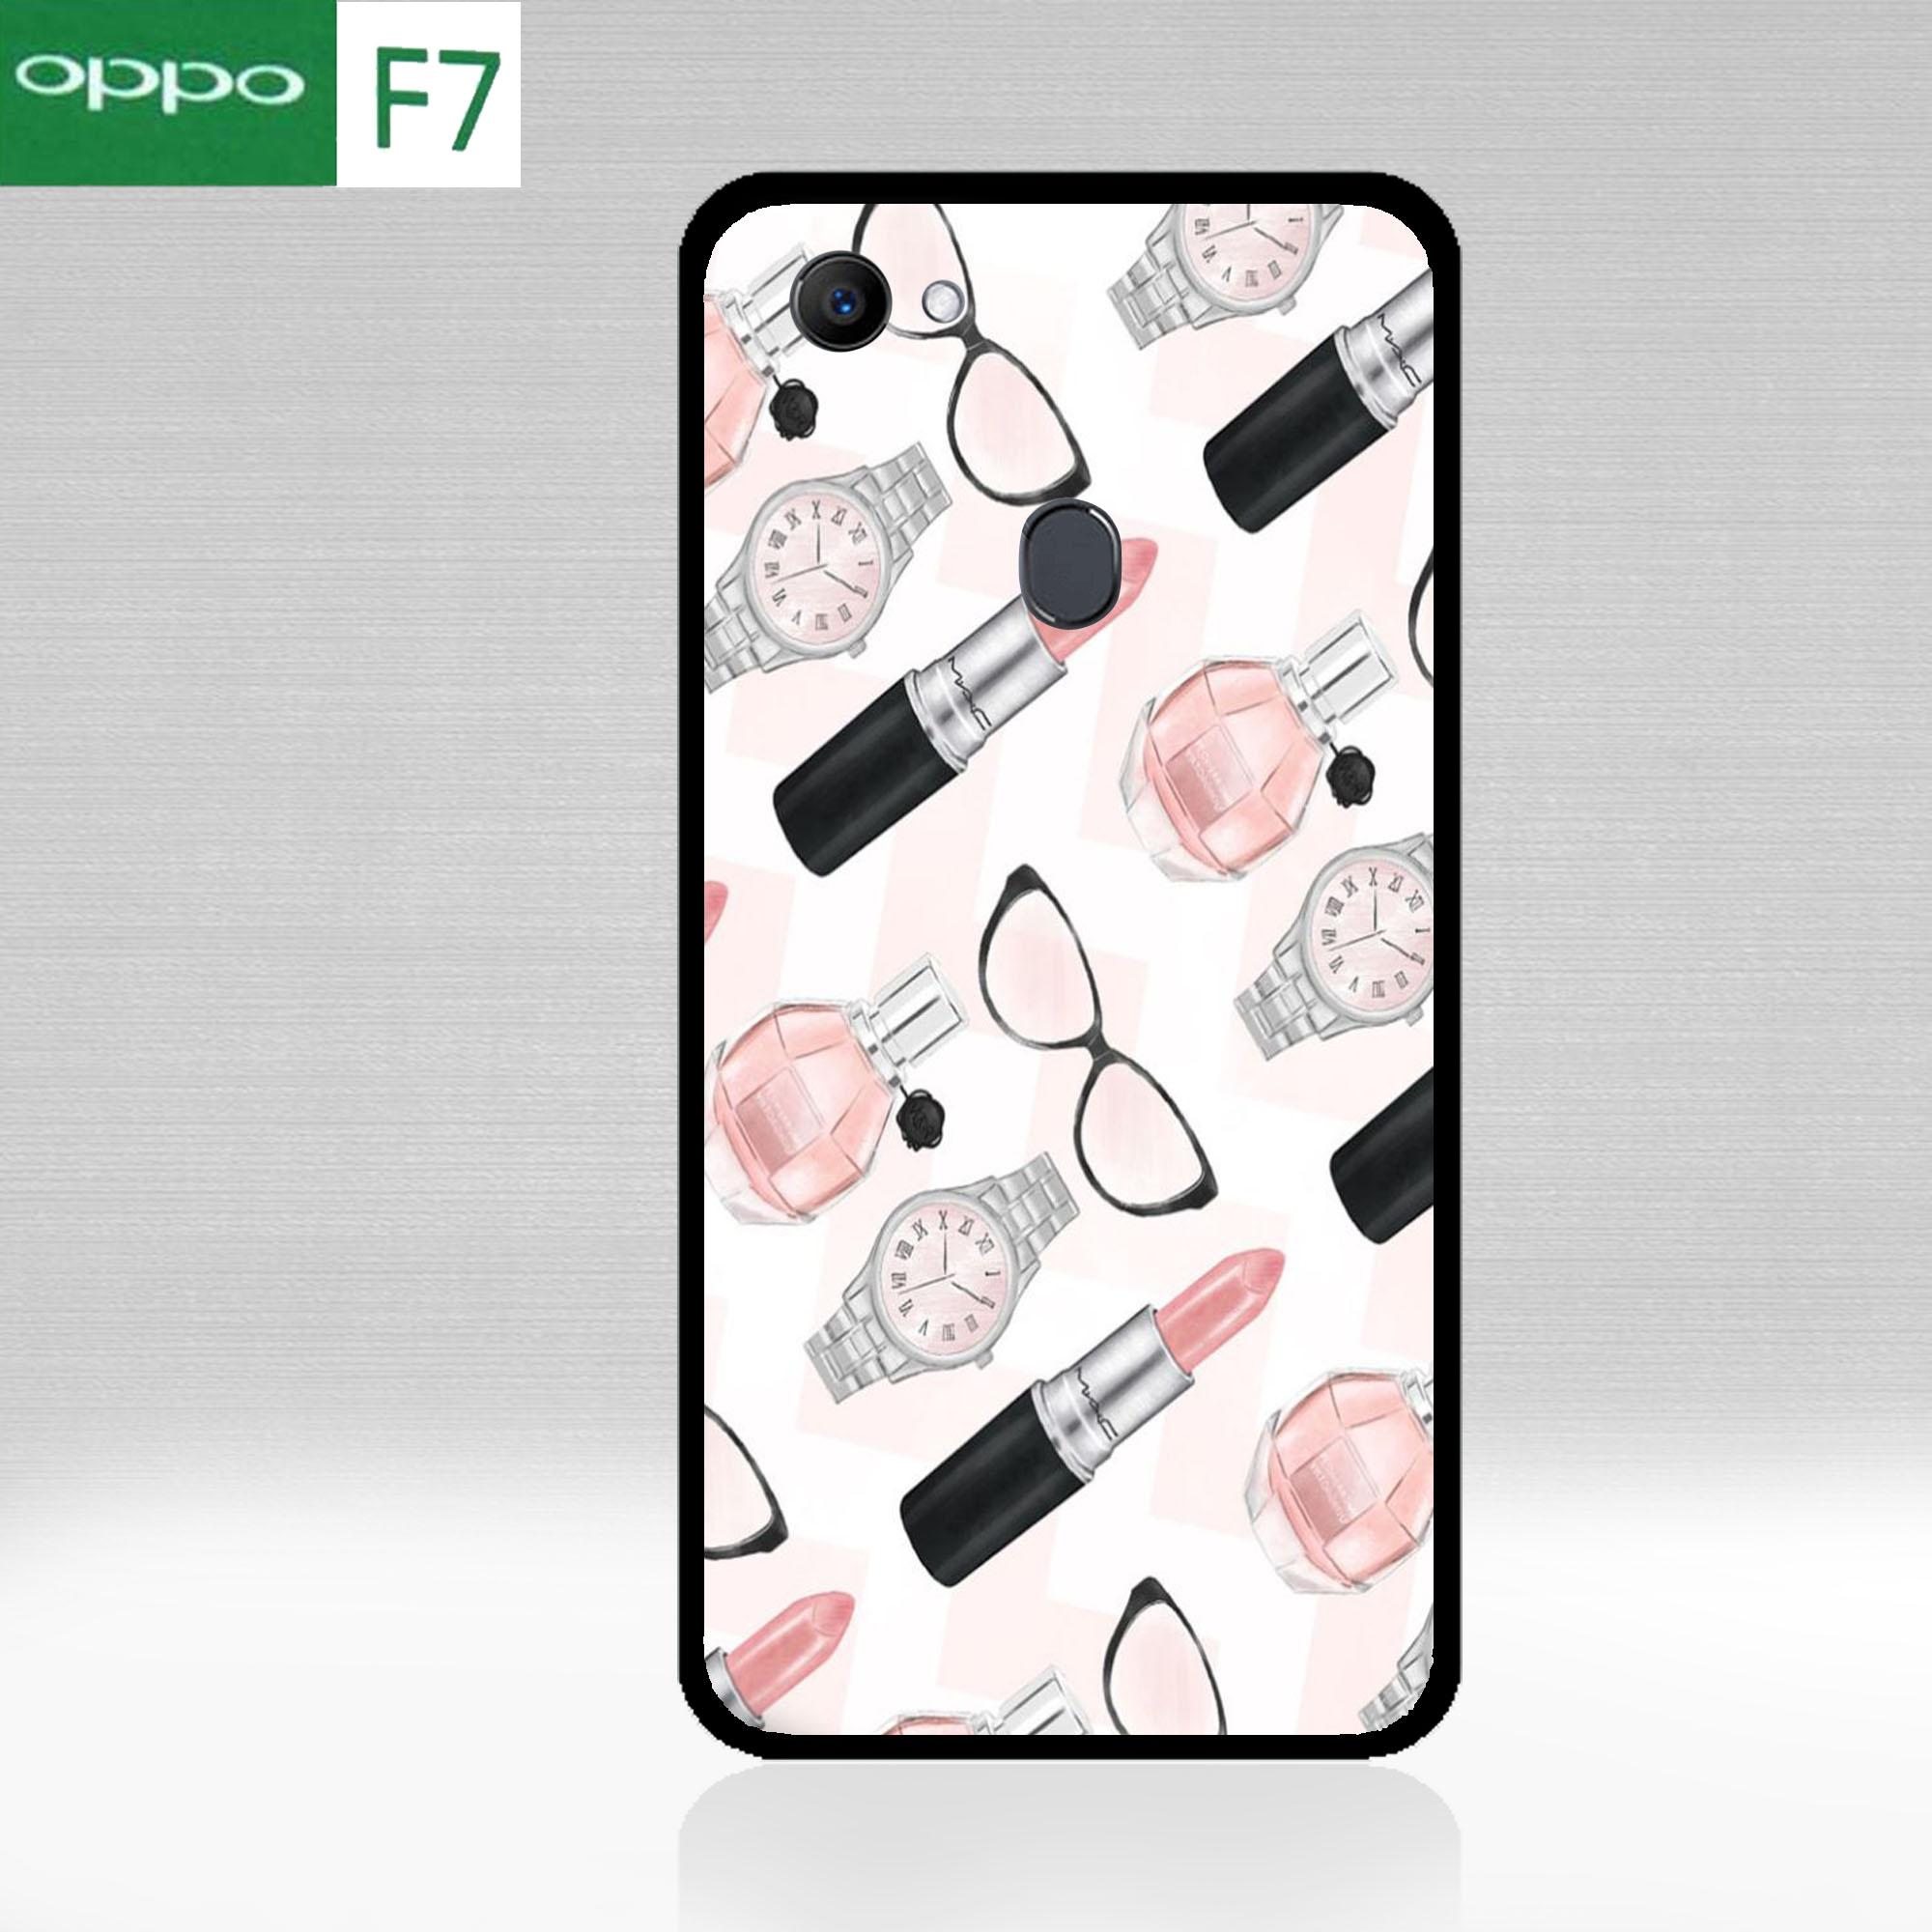 Case Oppo F7 - Fashion Manik Series